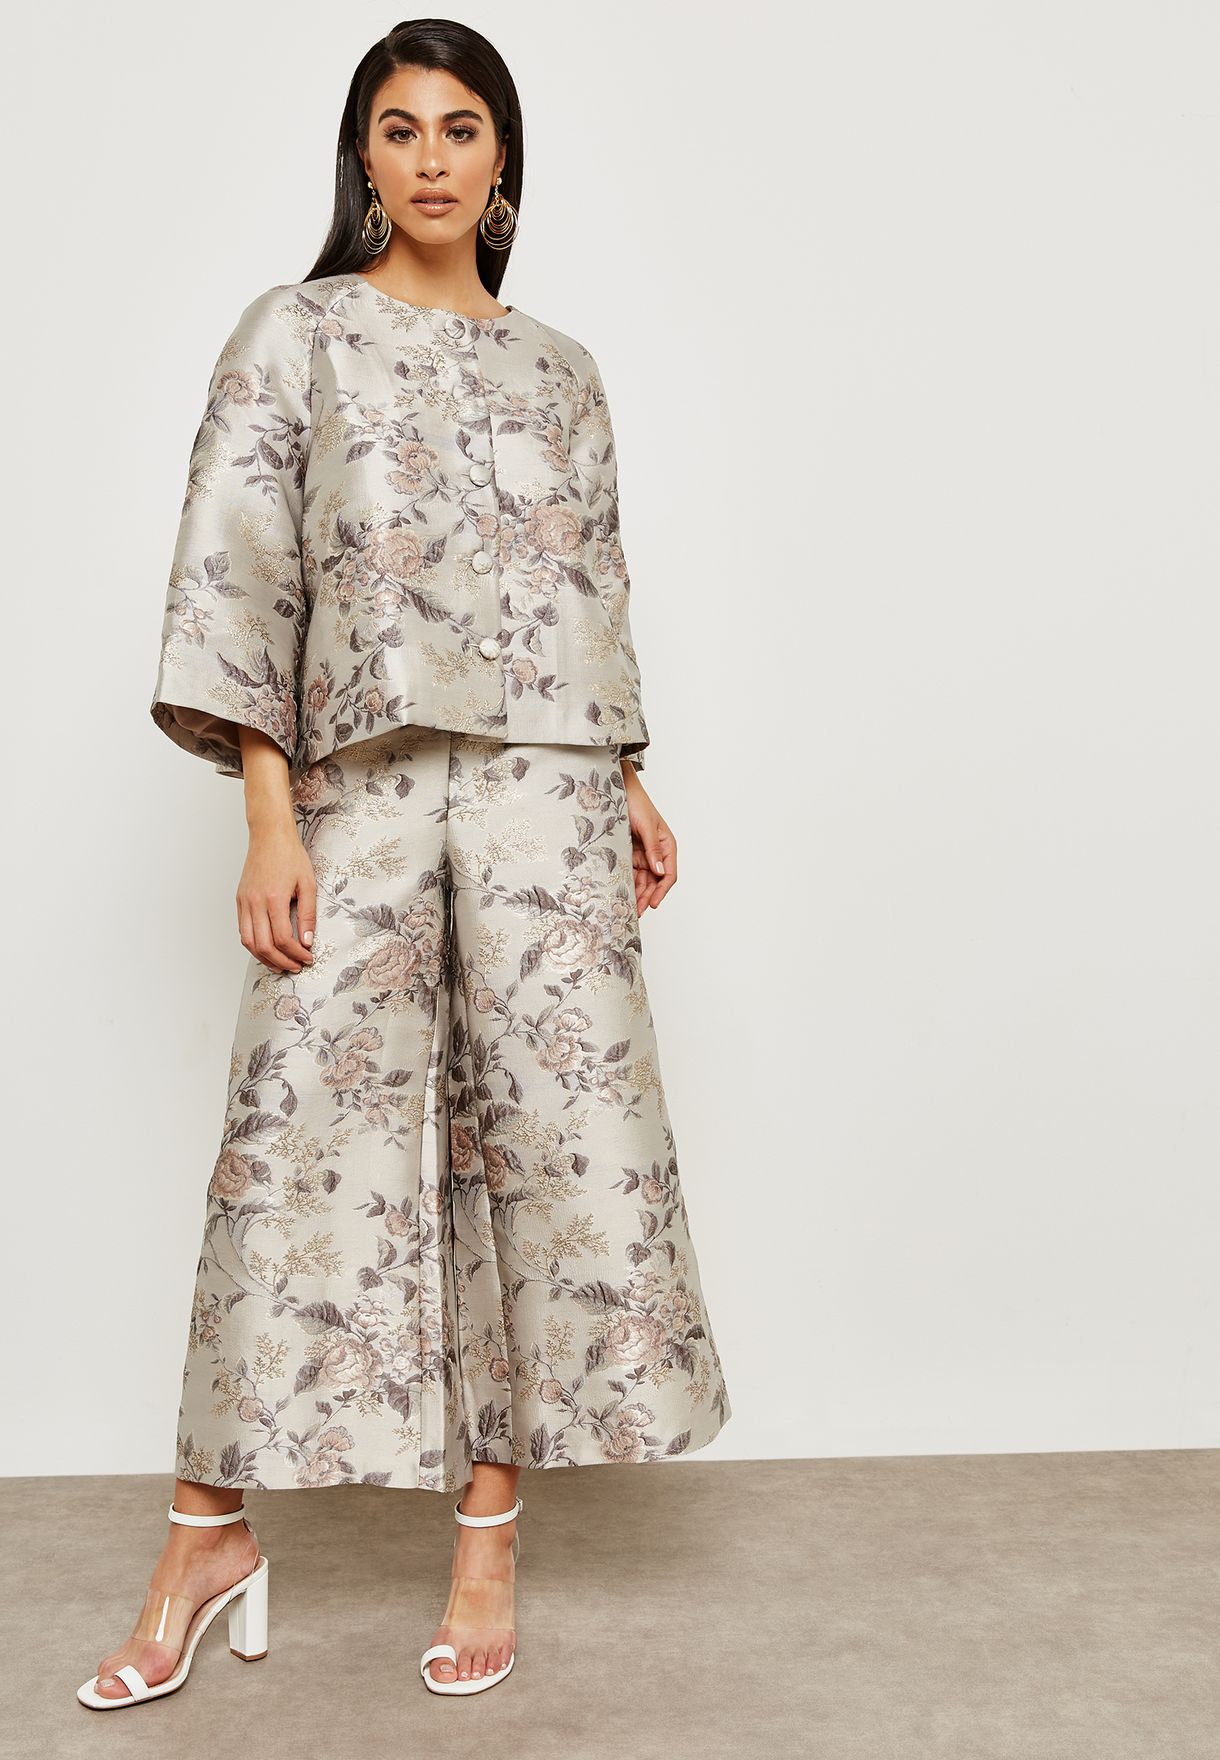 Shop Anotah Prints Floral Print Jacket 18hsjac L80570 For Women In Printed With Sash Belt